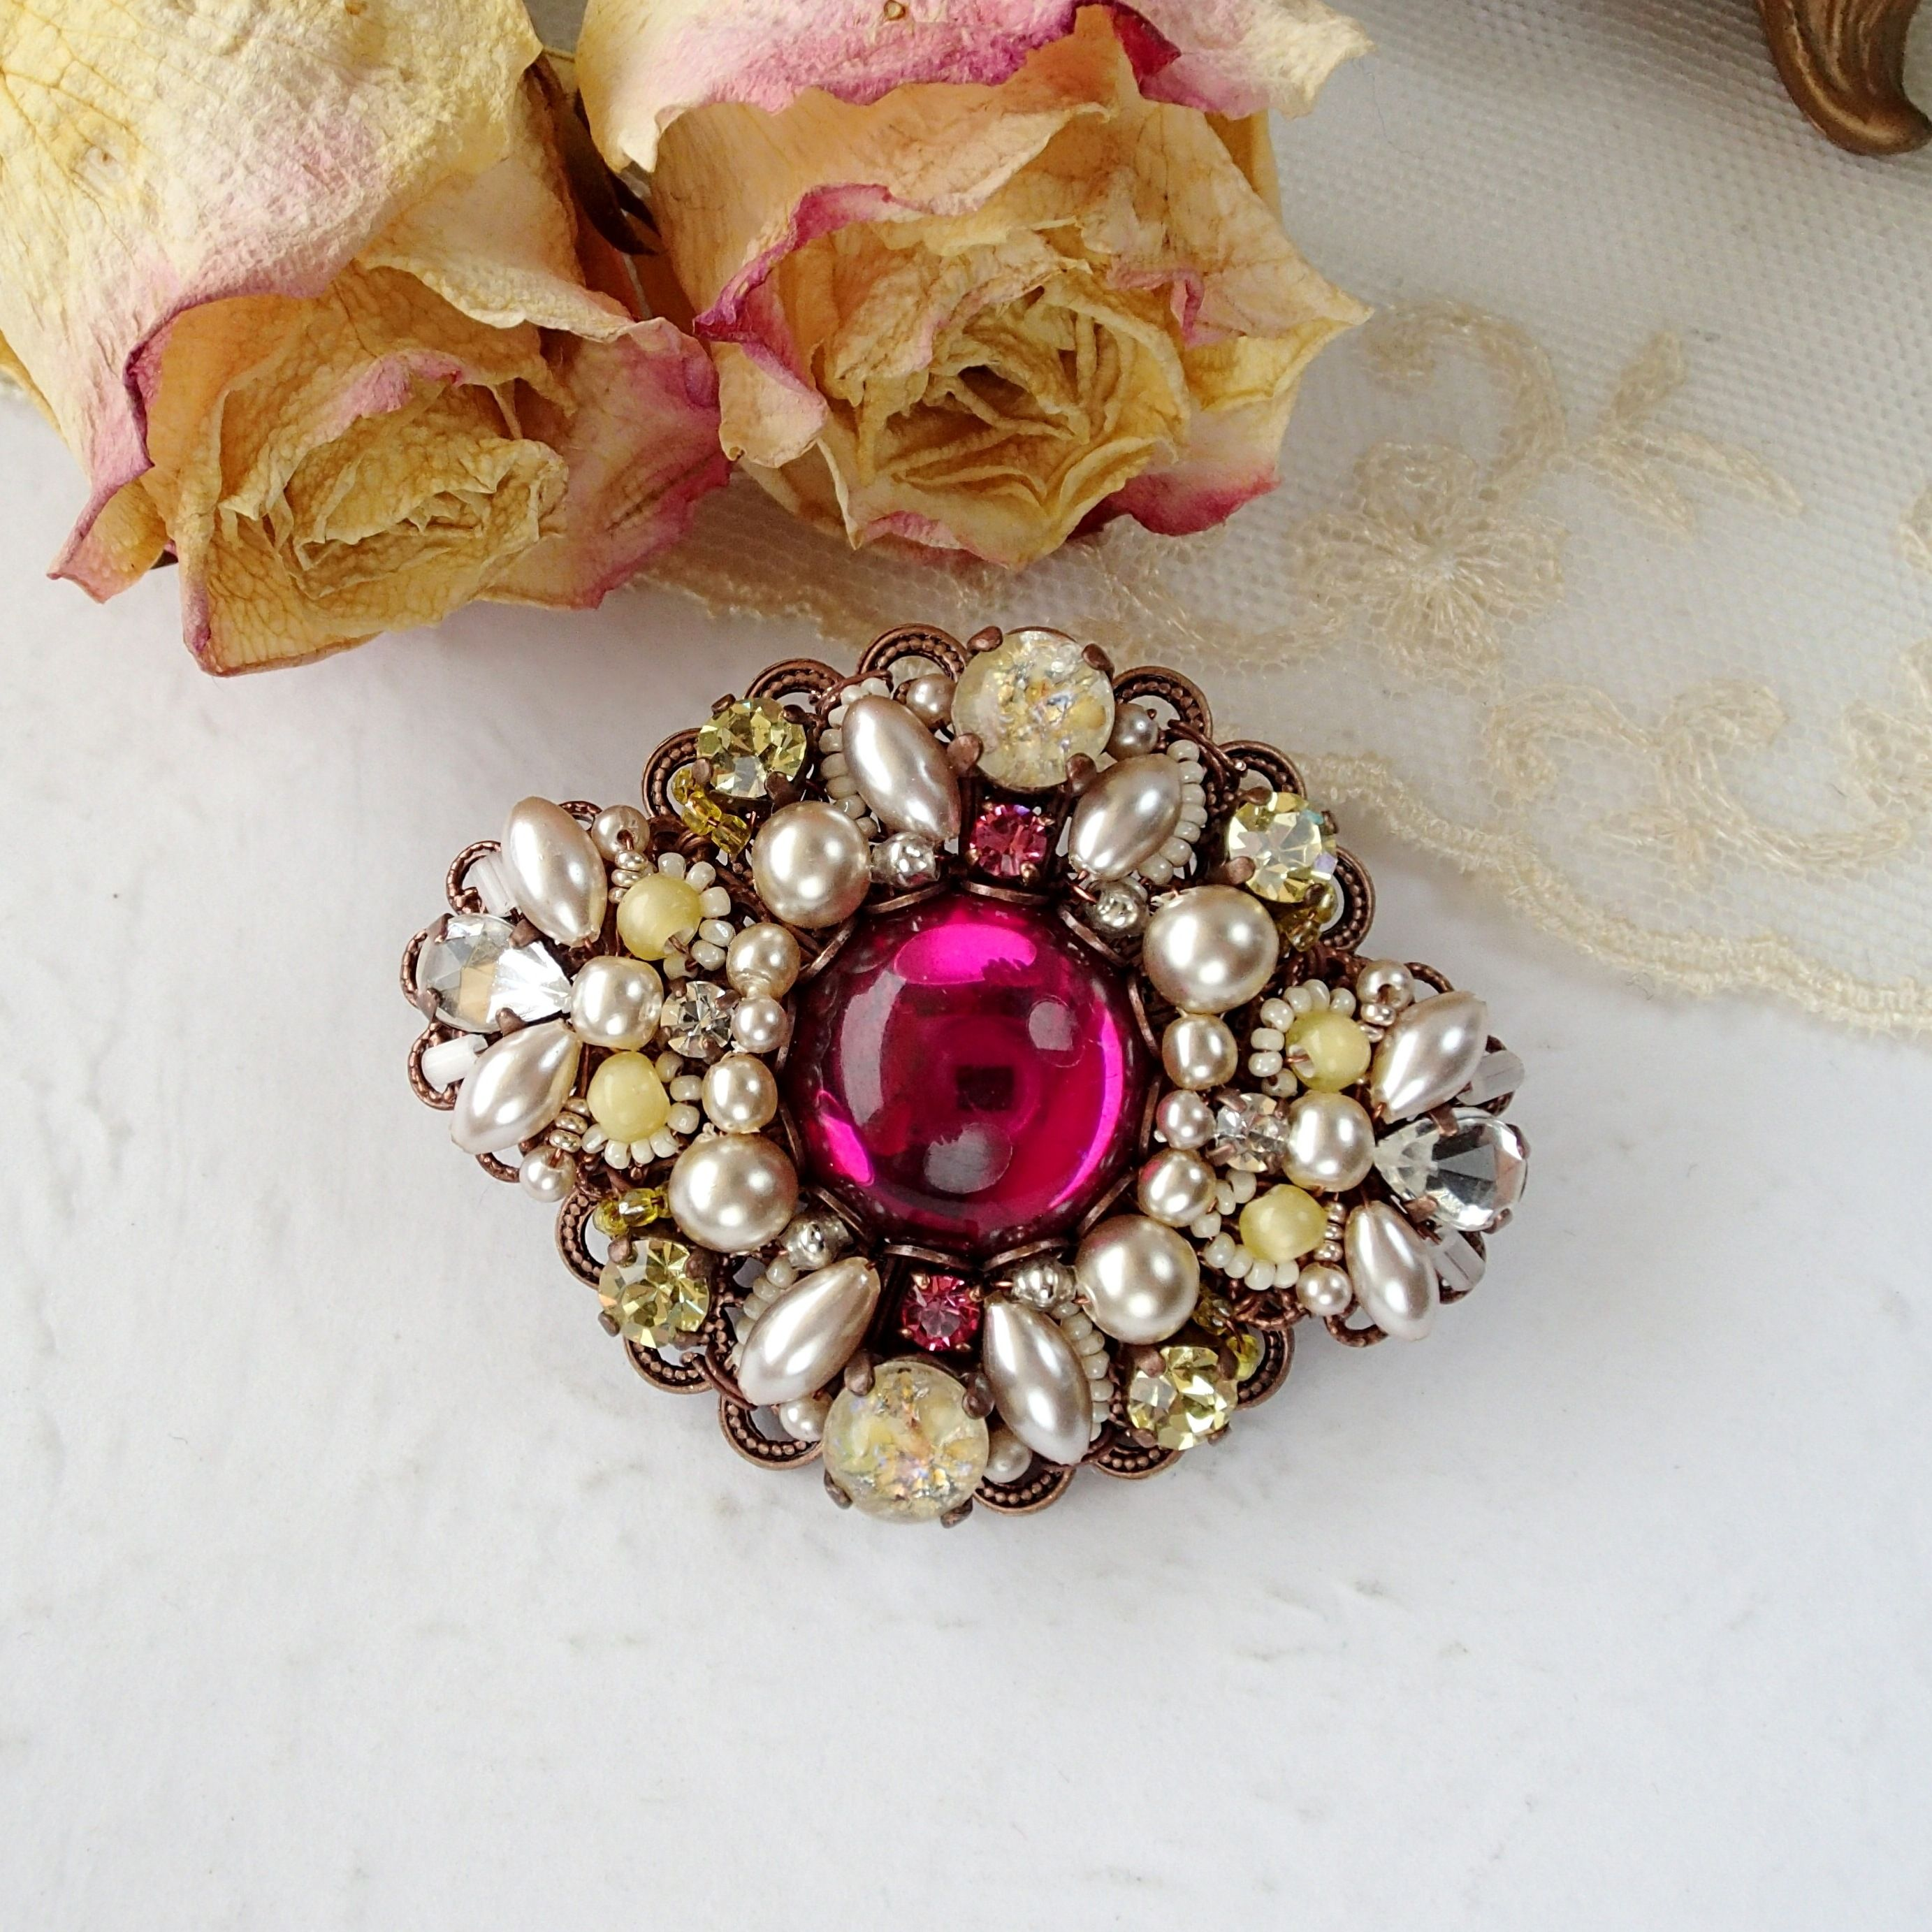 DARK PINK and YELLOW RHINESTONE BROOCH Price €45.00 Vintage style  rhinestone brooch combining dark pink with yellow. Dried flowers 3566e0022d66